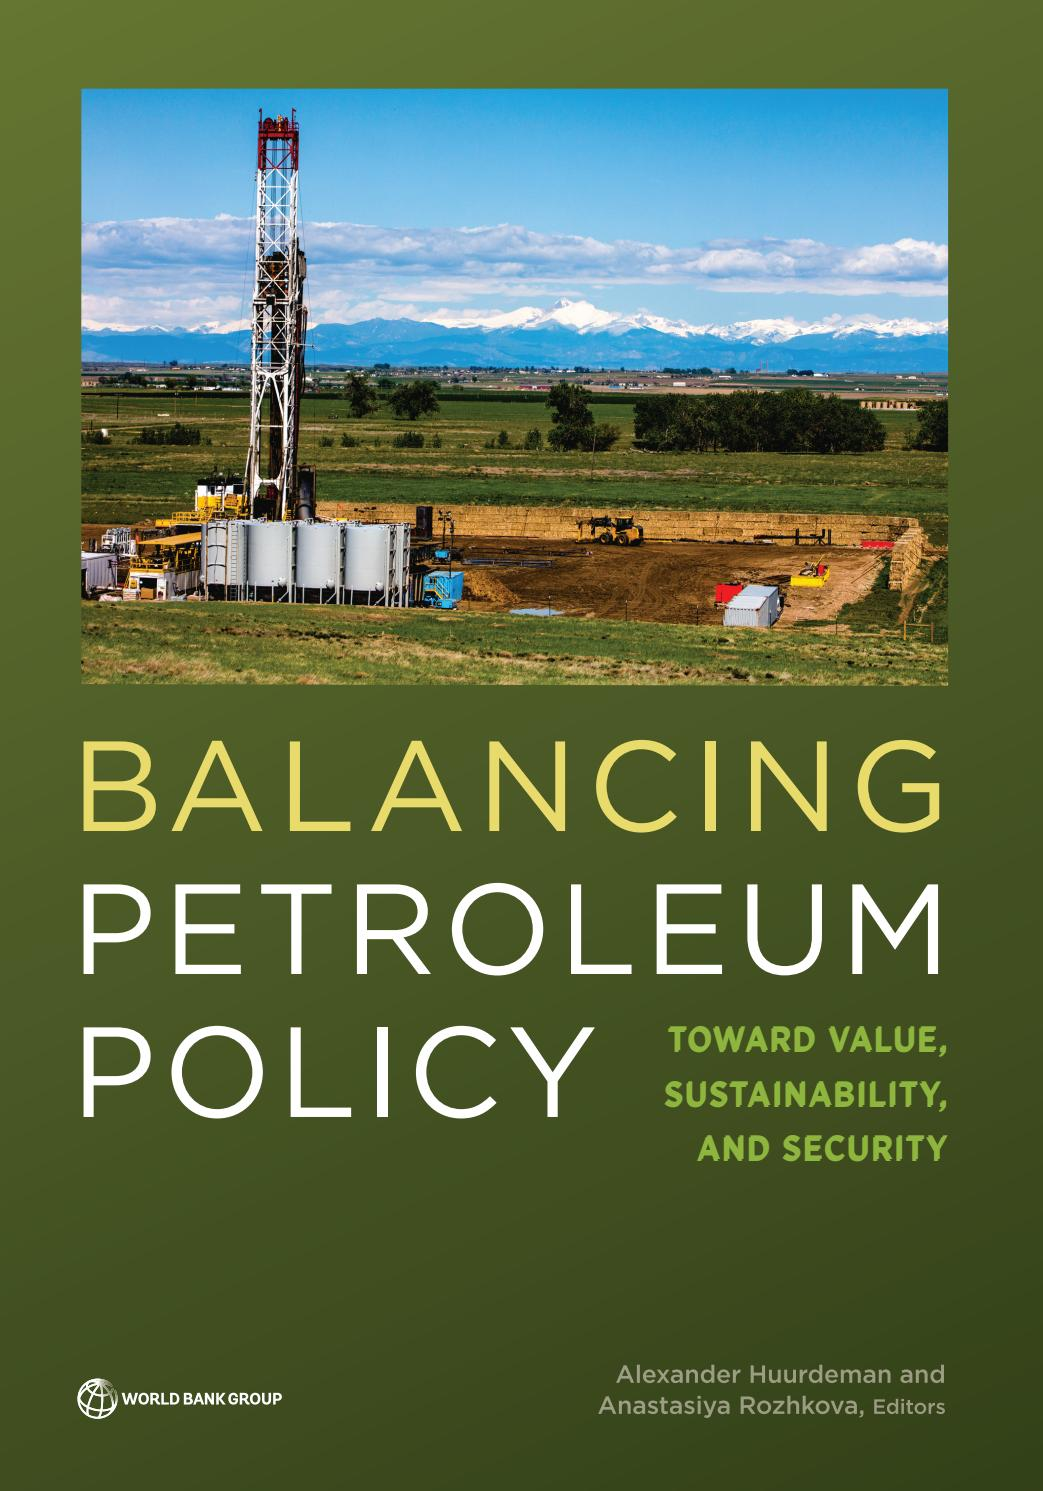 Balancing Petroleum Policy by World Bank Group Publications